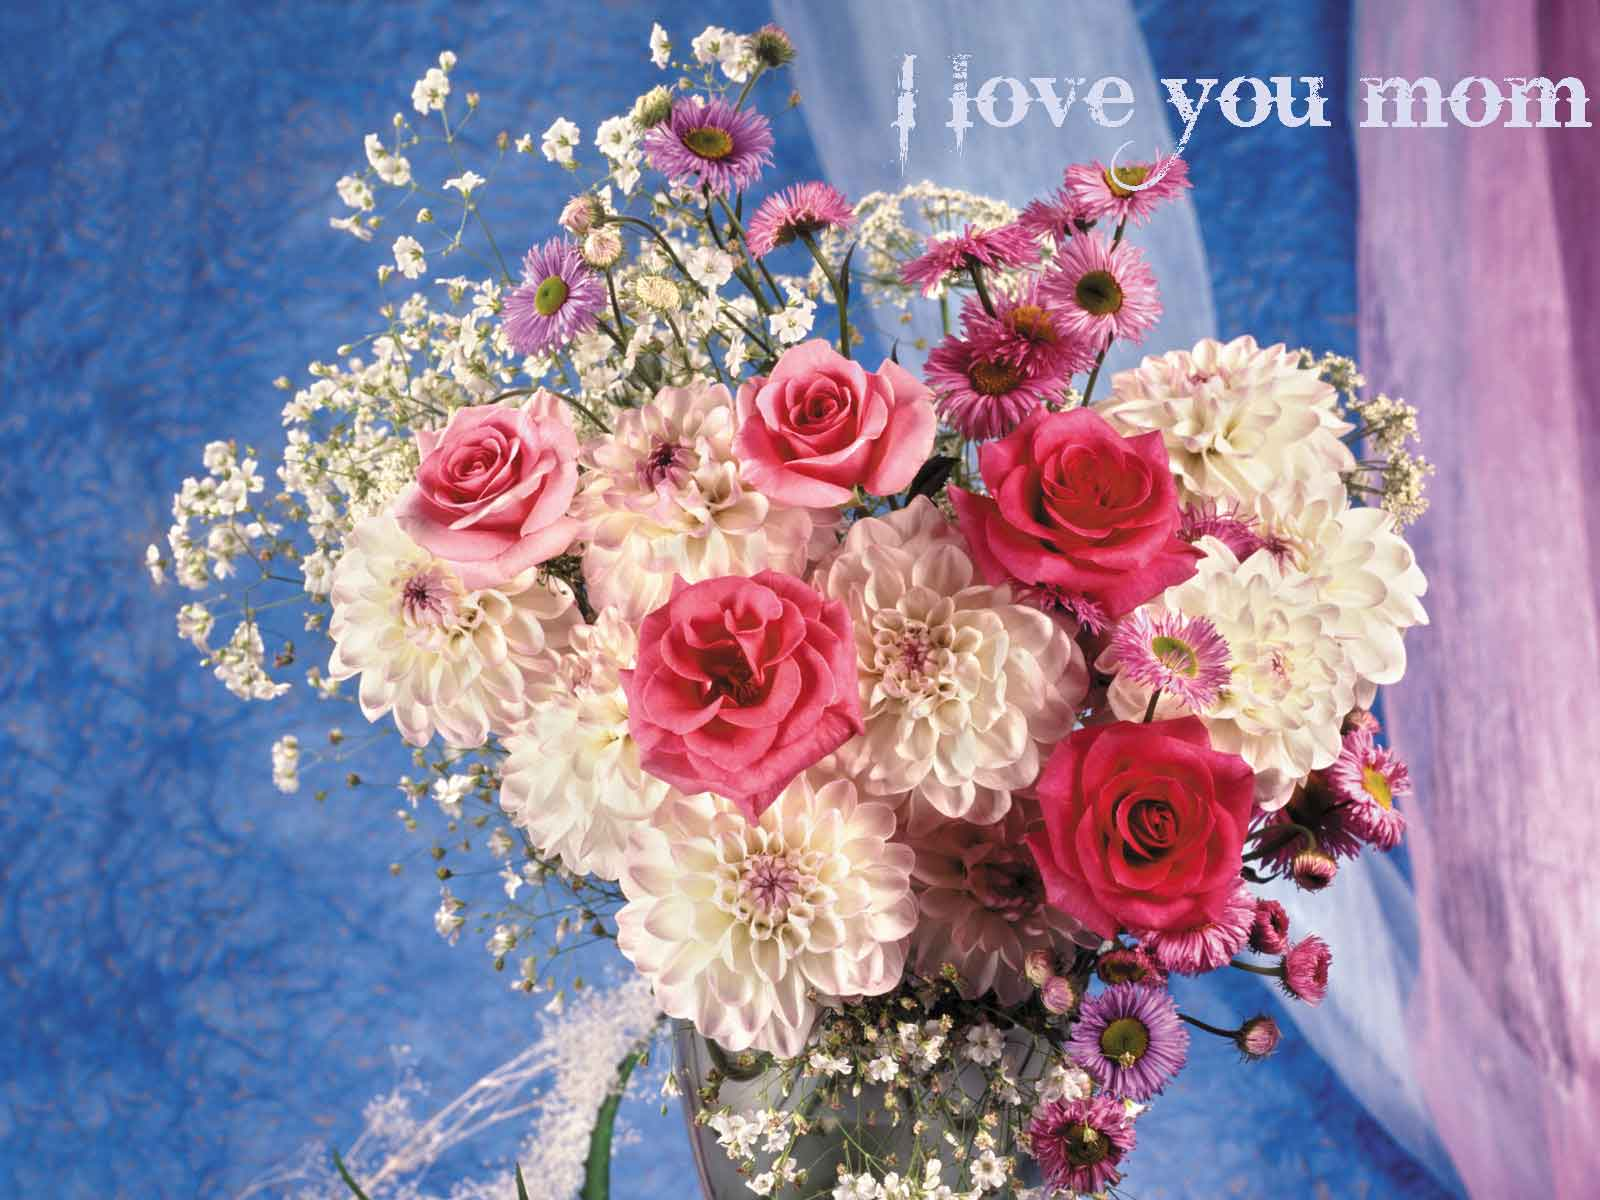 Love You Mom Beautiful Flowers Wallpaper 1600x1200